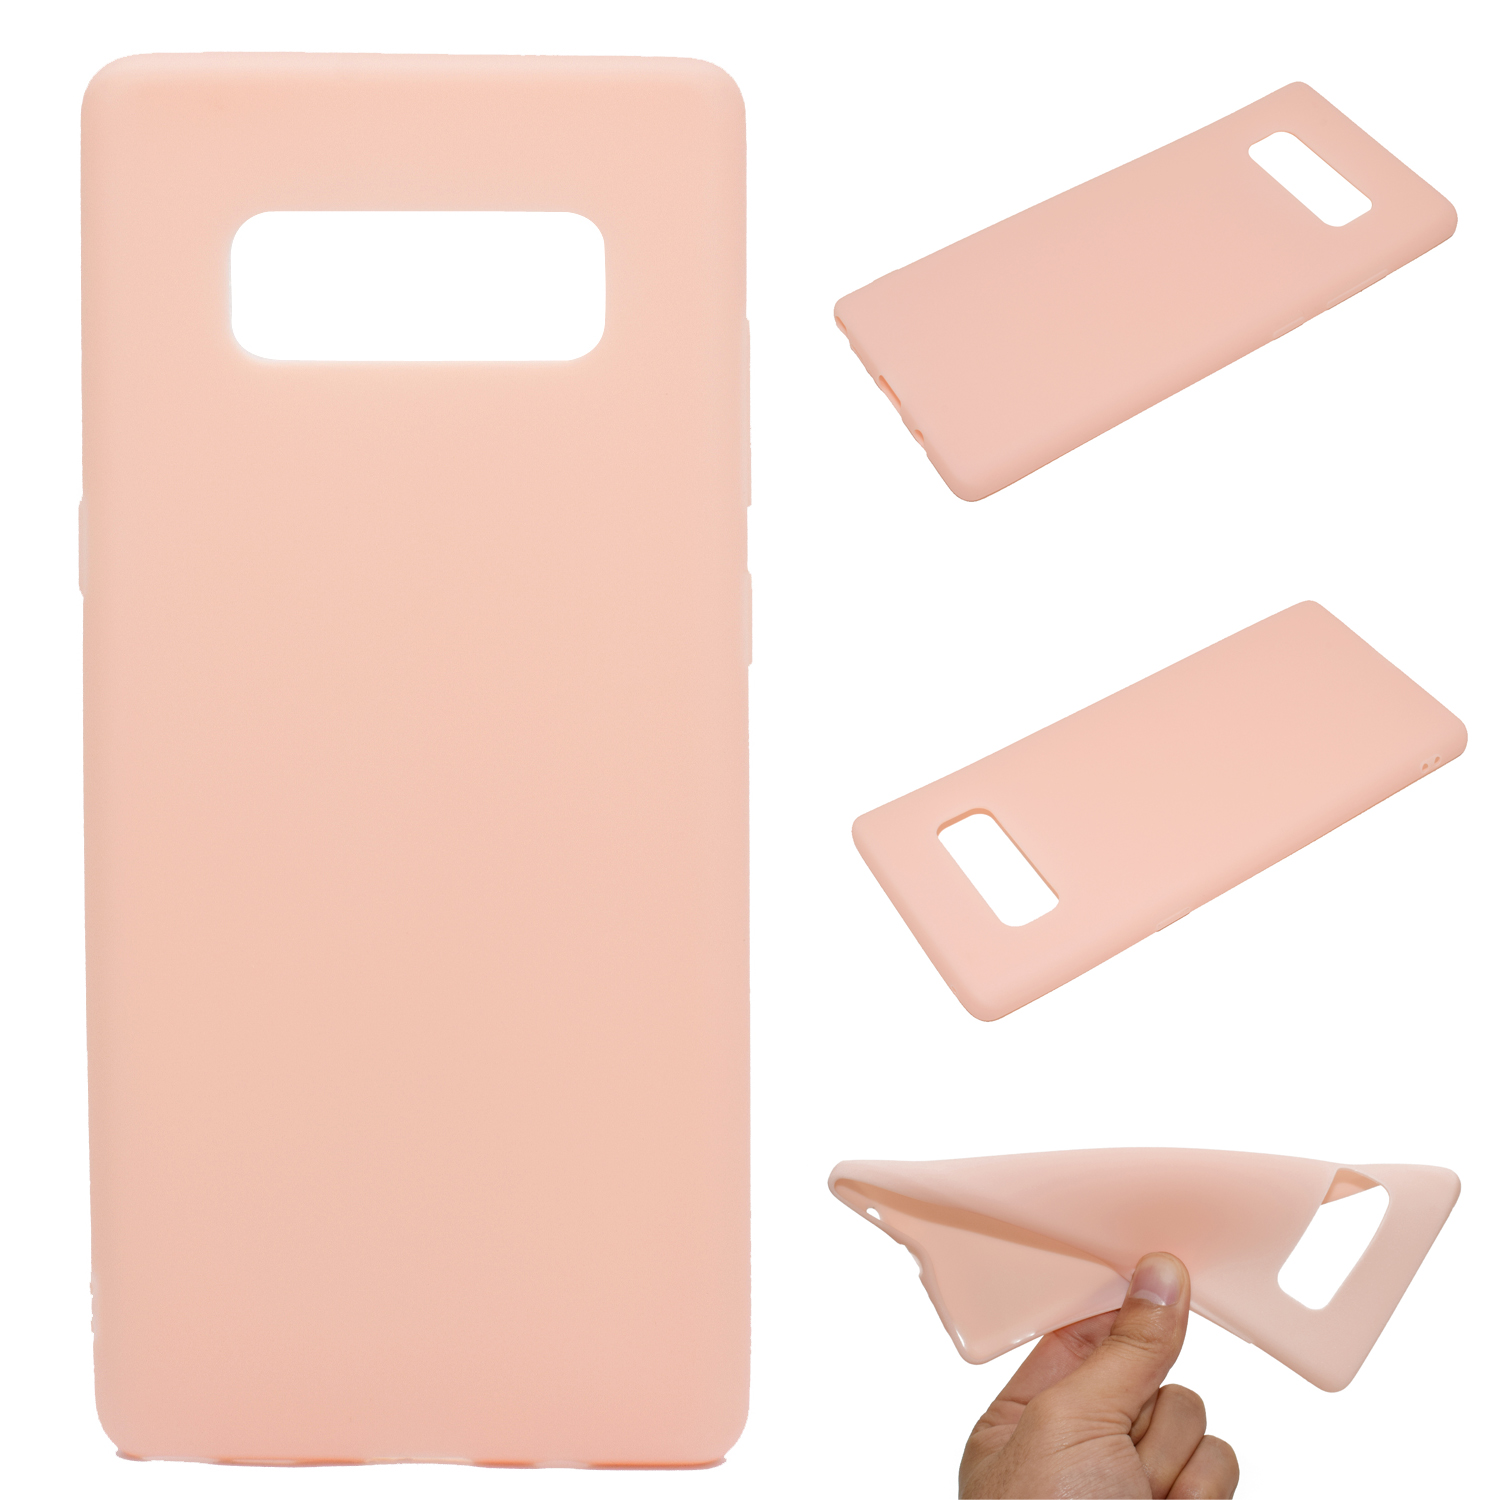 for Samsung NOTE 8 Cute Candy Color Matte TPU Anti-scratch Non-slip Protective Cover Back Case Light pink